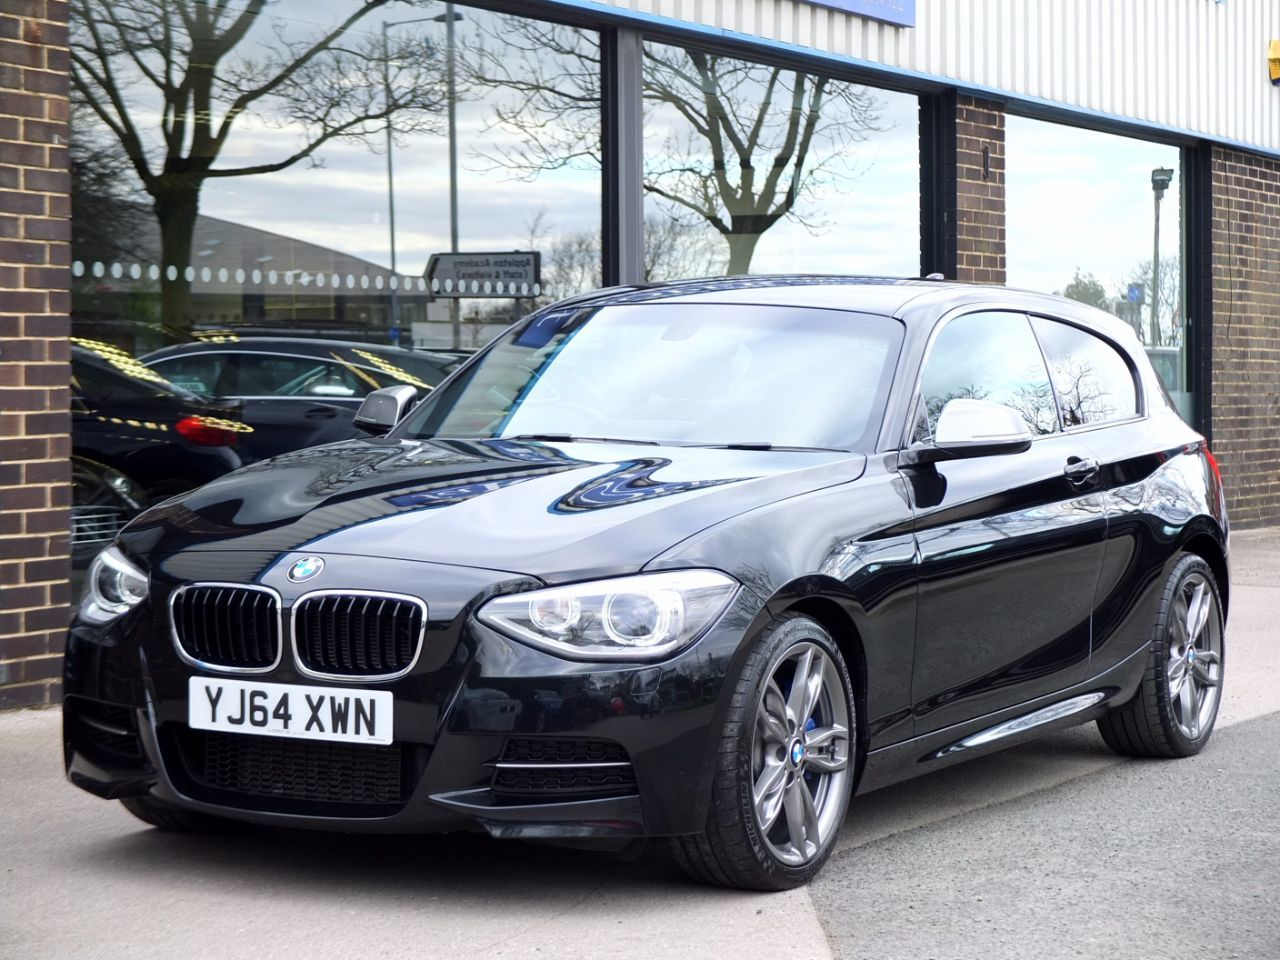 BMW 1 Series 3.0 M135i M Performance 3 door Auto Hatchback Petrol Black Sapphire MetallicBMW 1 Series 3.0 M135i M Performance 3 door Auto Hatchback Petrol Black Sapphire Metallic at fa Roper Ltd Bradford